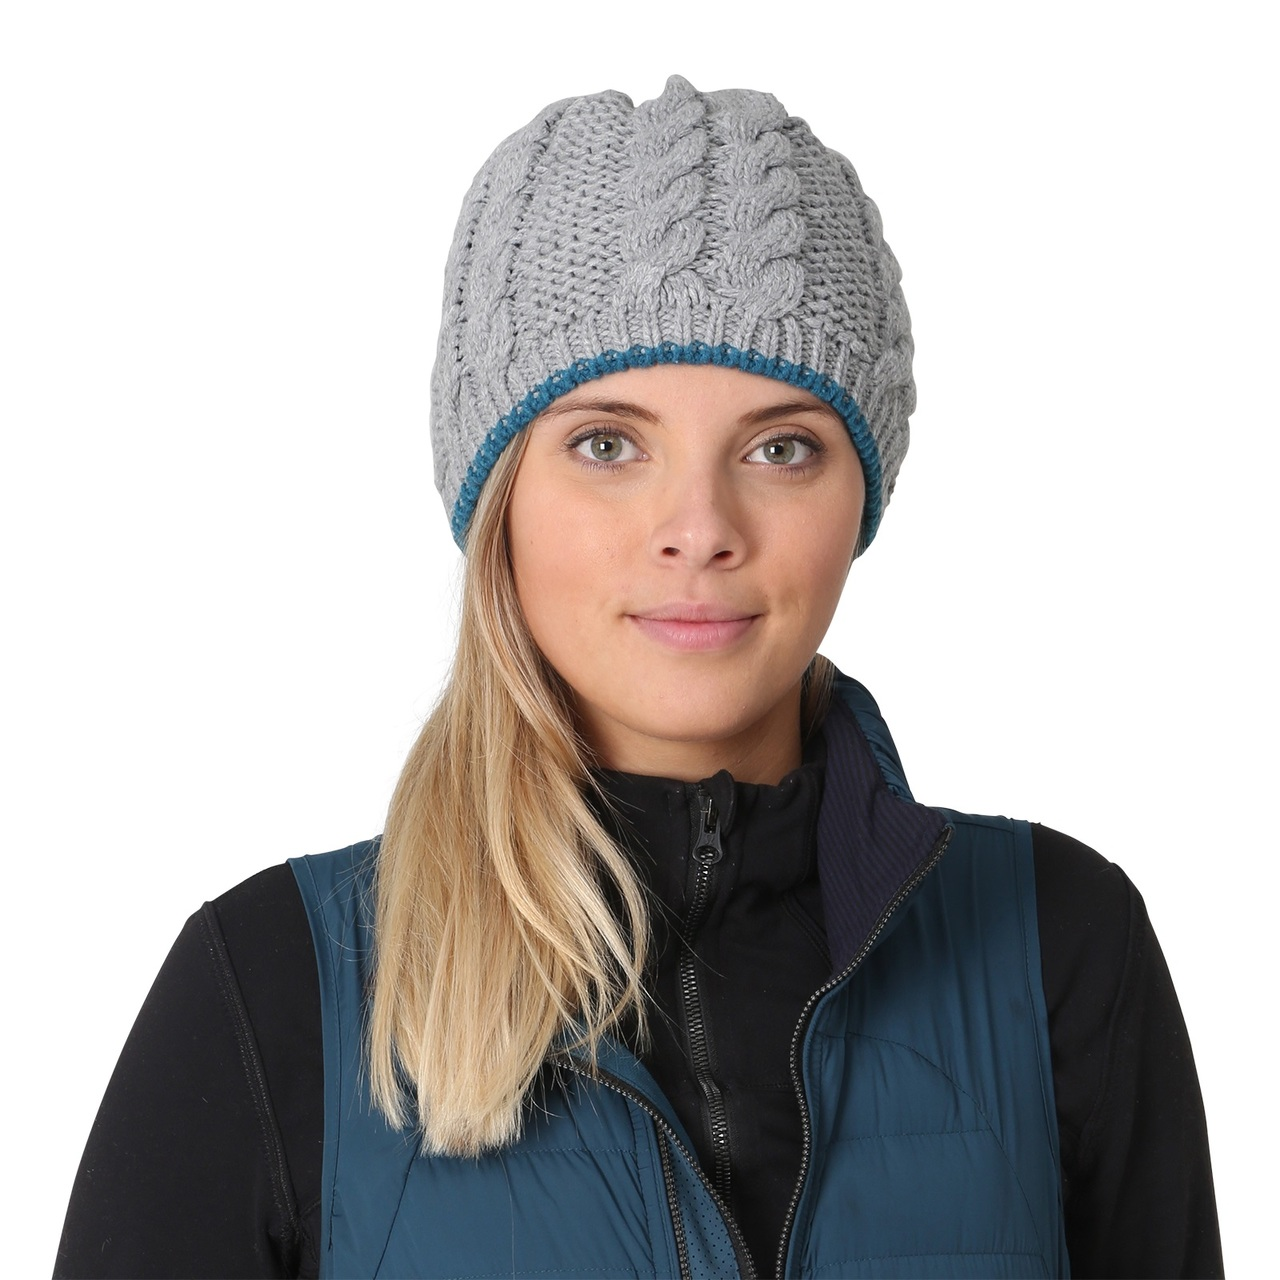 ... TrailHeads Women s Cable Knit Beanie with Fleece Lining · storm grey -  blue spruce 2d587d64301